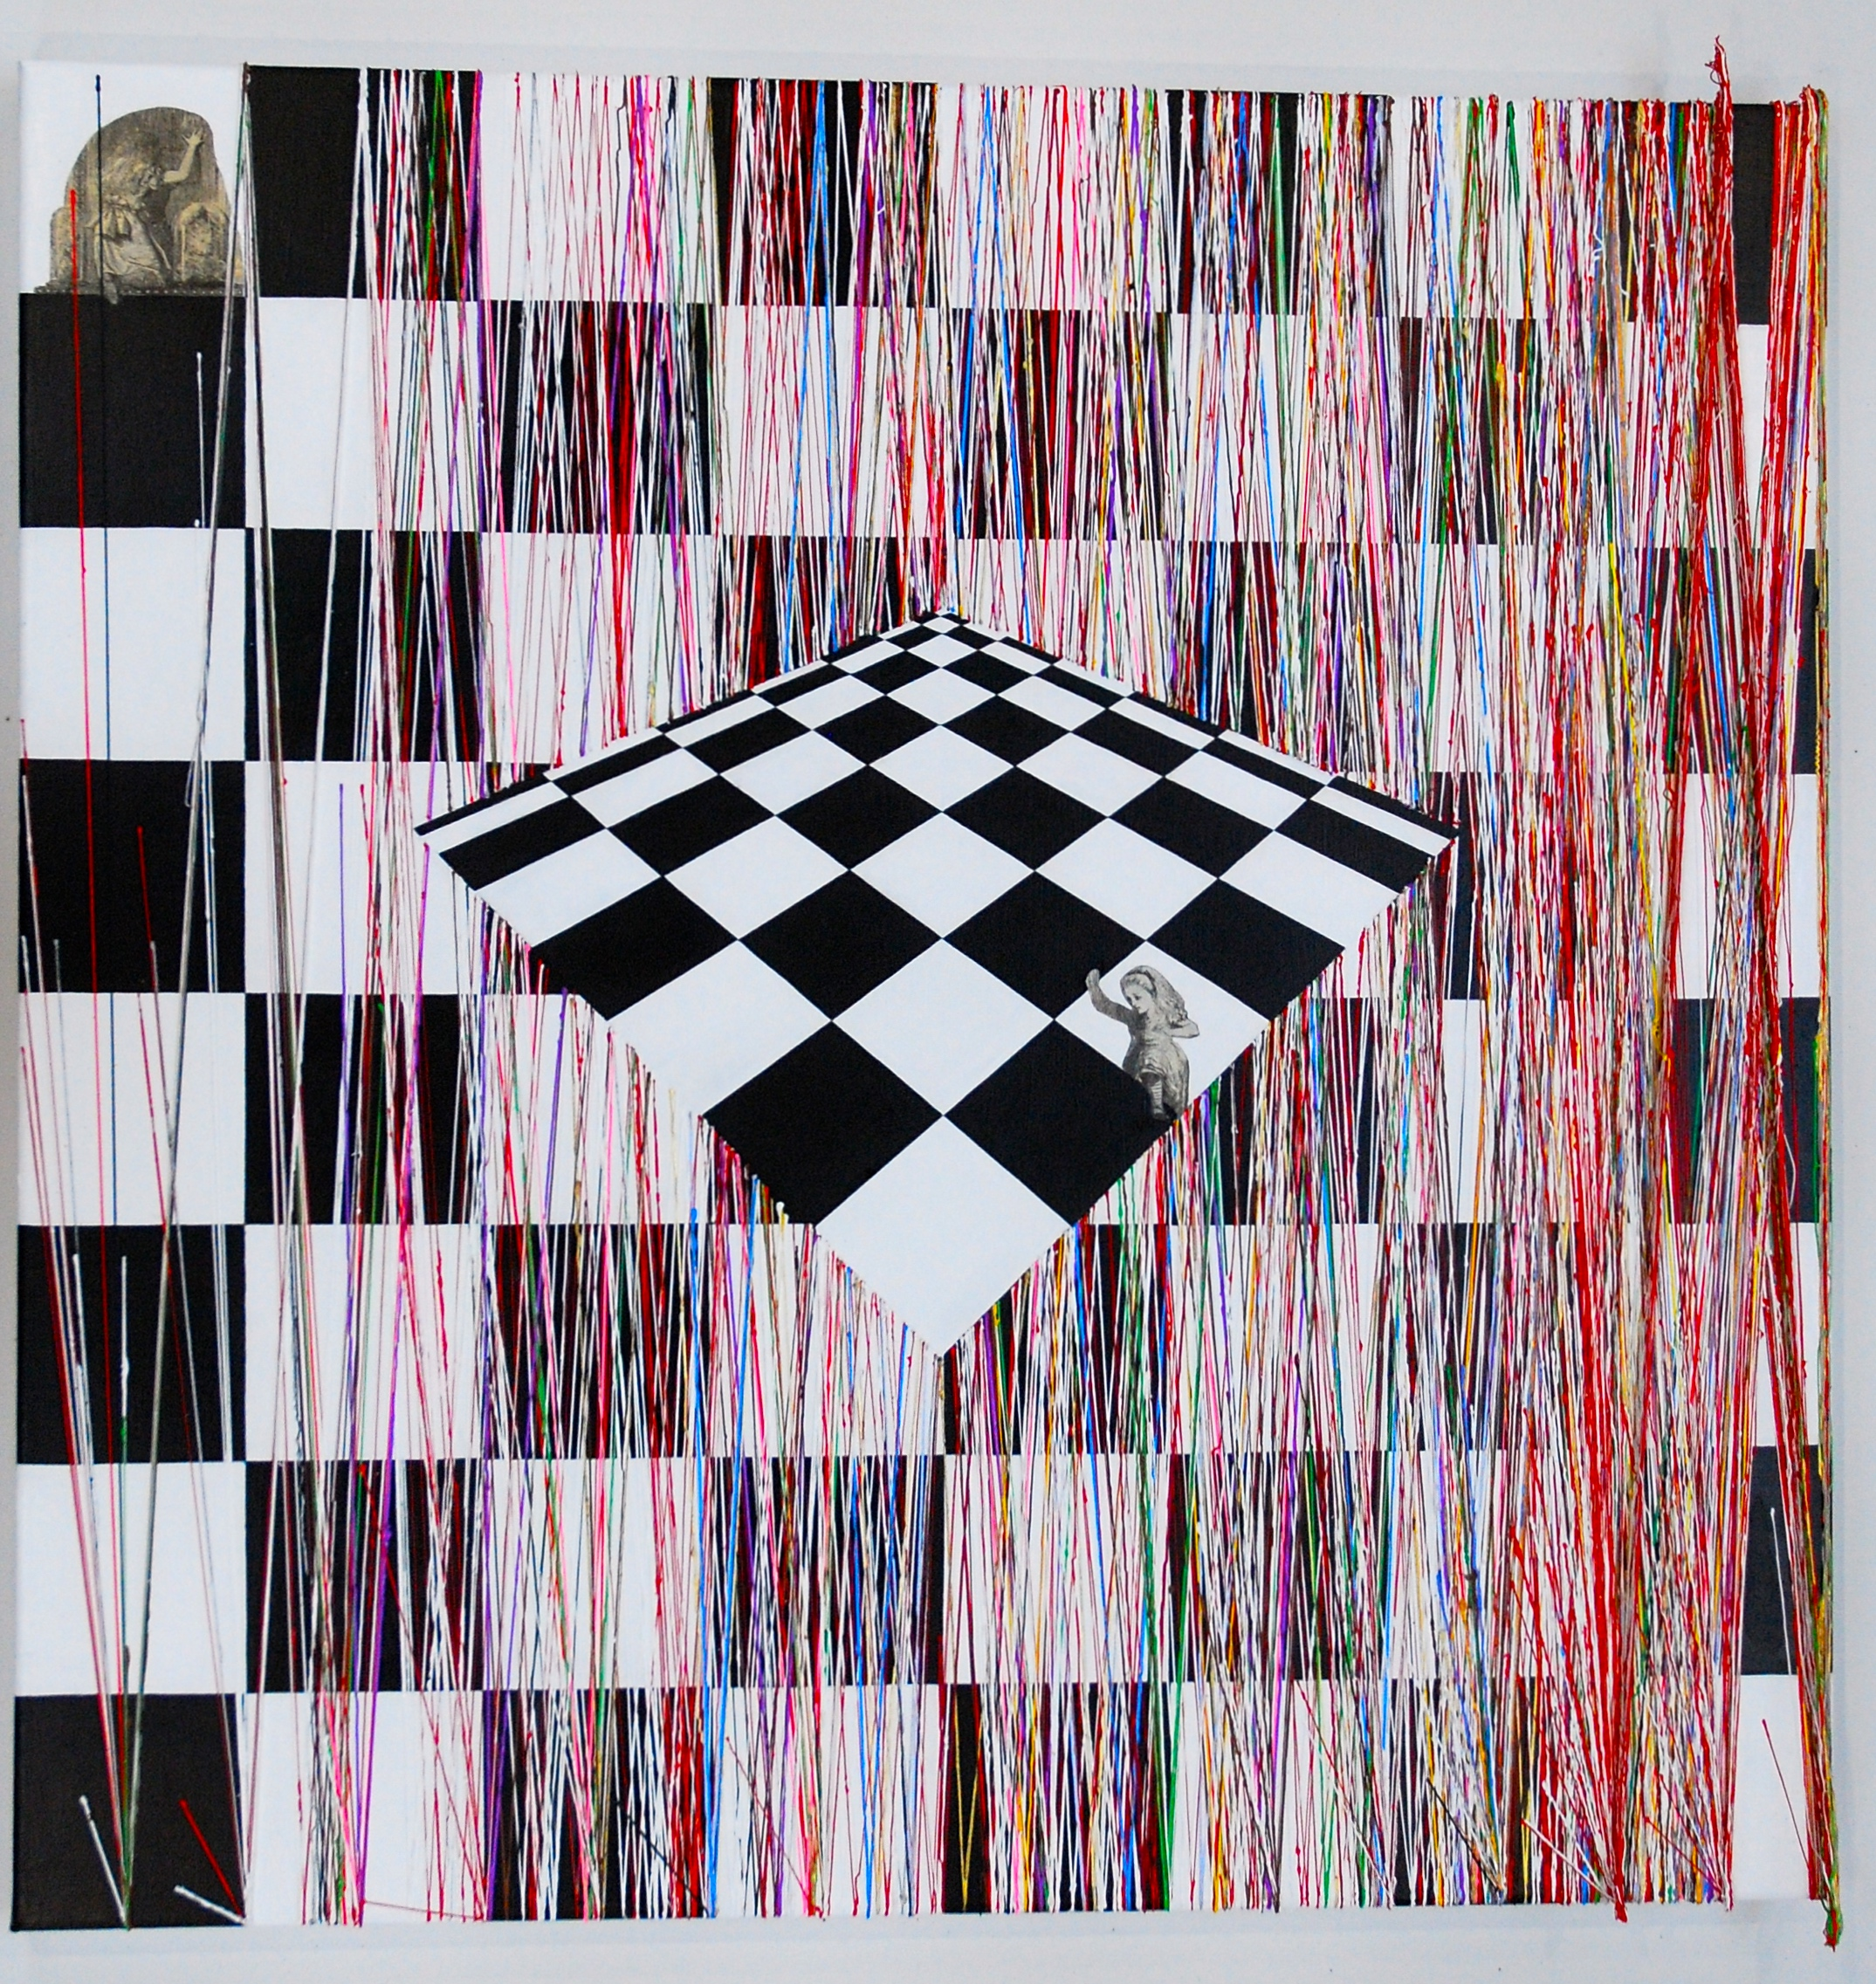 Again using collage of the Tenniel drawings, Alice disappears into the chessboard to re-emerge on the second chessboard and into the world of the viewer. This painting also shows how colours can be extremely unevenly dispersed amidst the text - well over half of them occurring in the last few pages, or the last few squares of the chessboard.